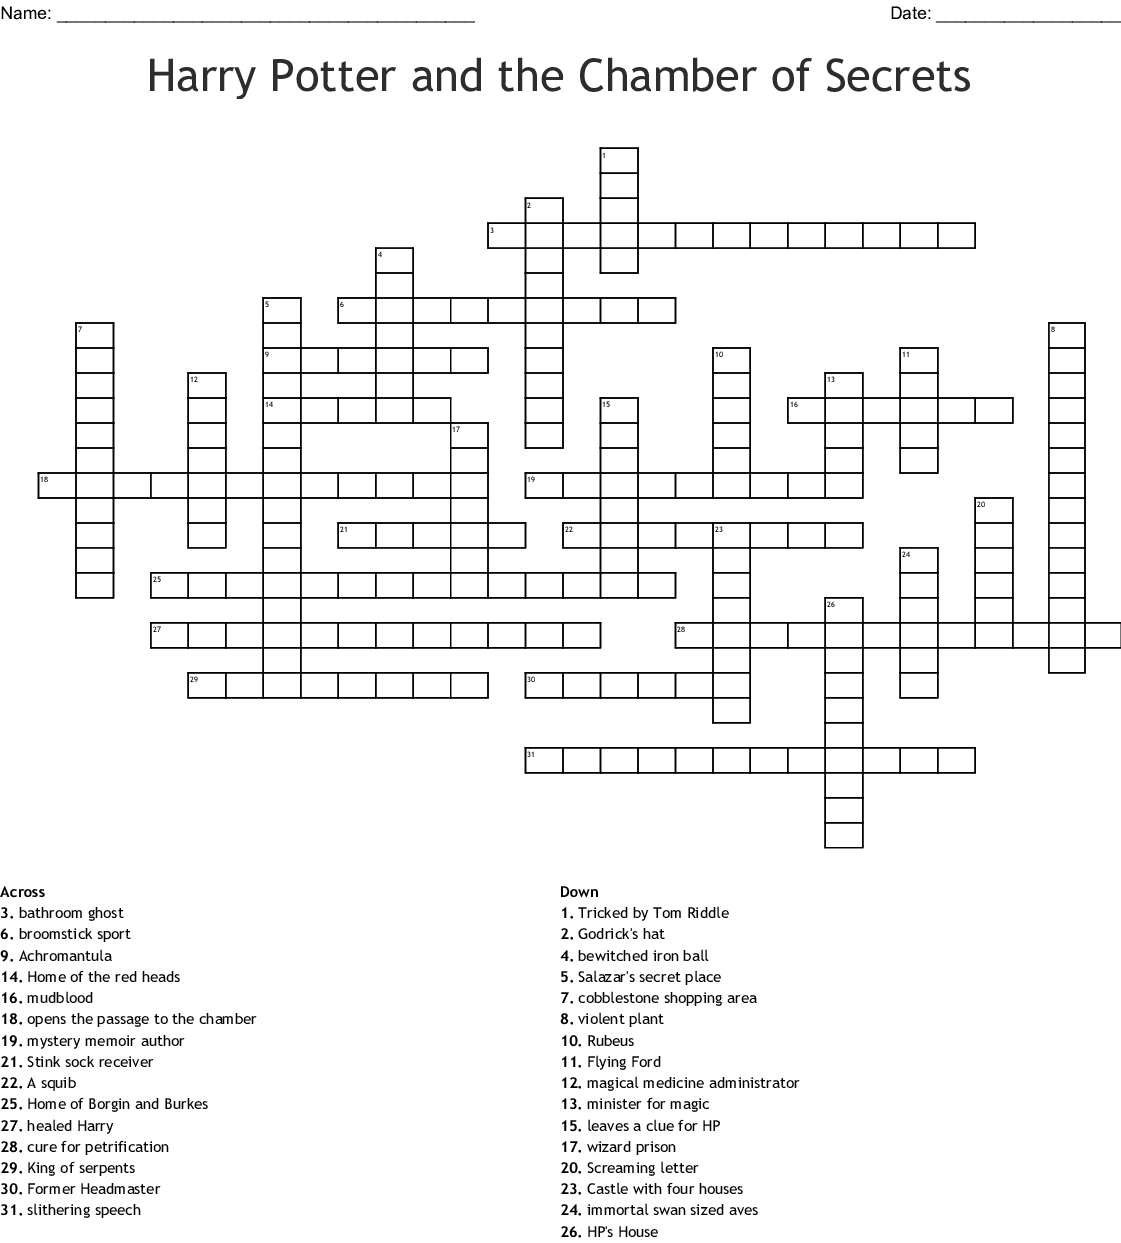 graphic regarding Harry Potter Crossword Puzzle Printable identified as Harry Potter and the Chamber of Techniques Crossword - WordMint